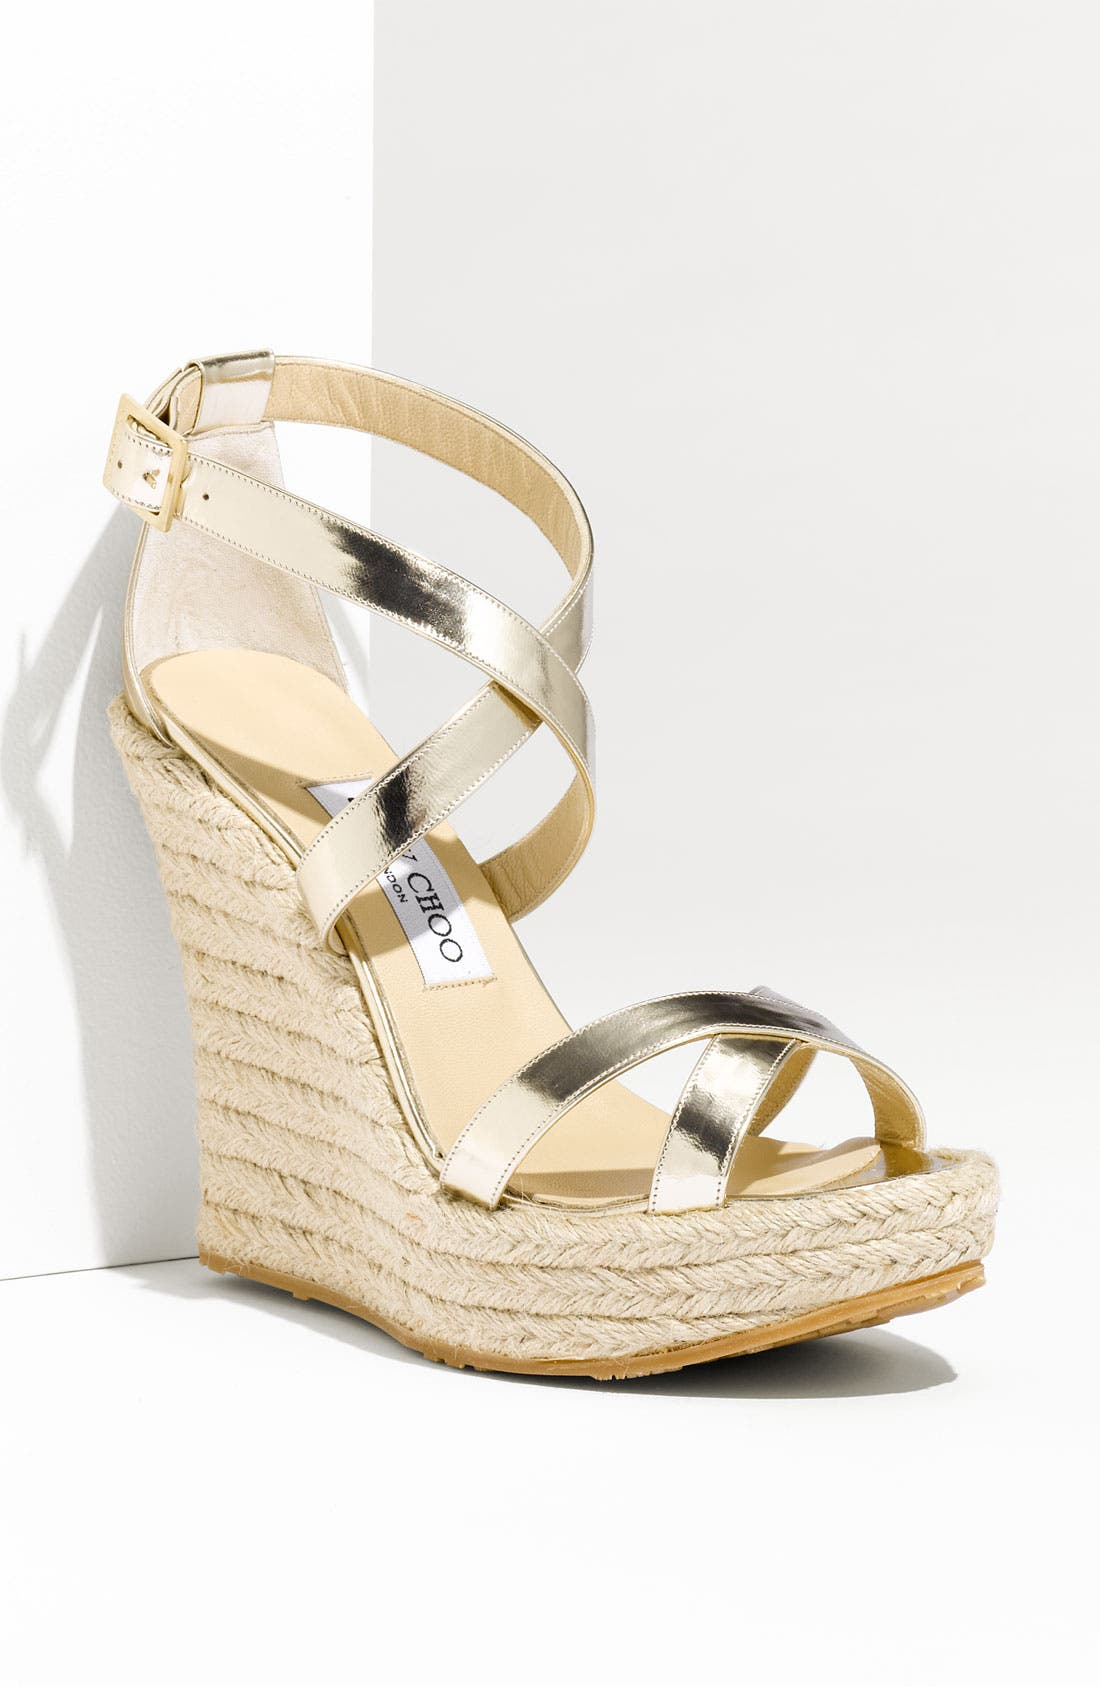 Alternate Image 1 Selected - Jimmy Choo 'Porto' Platform Espadrille